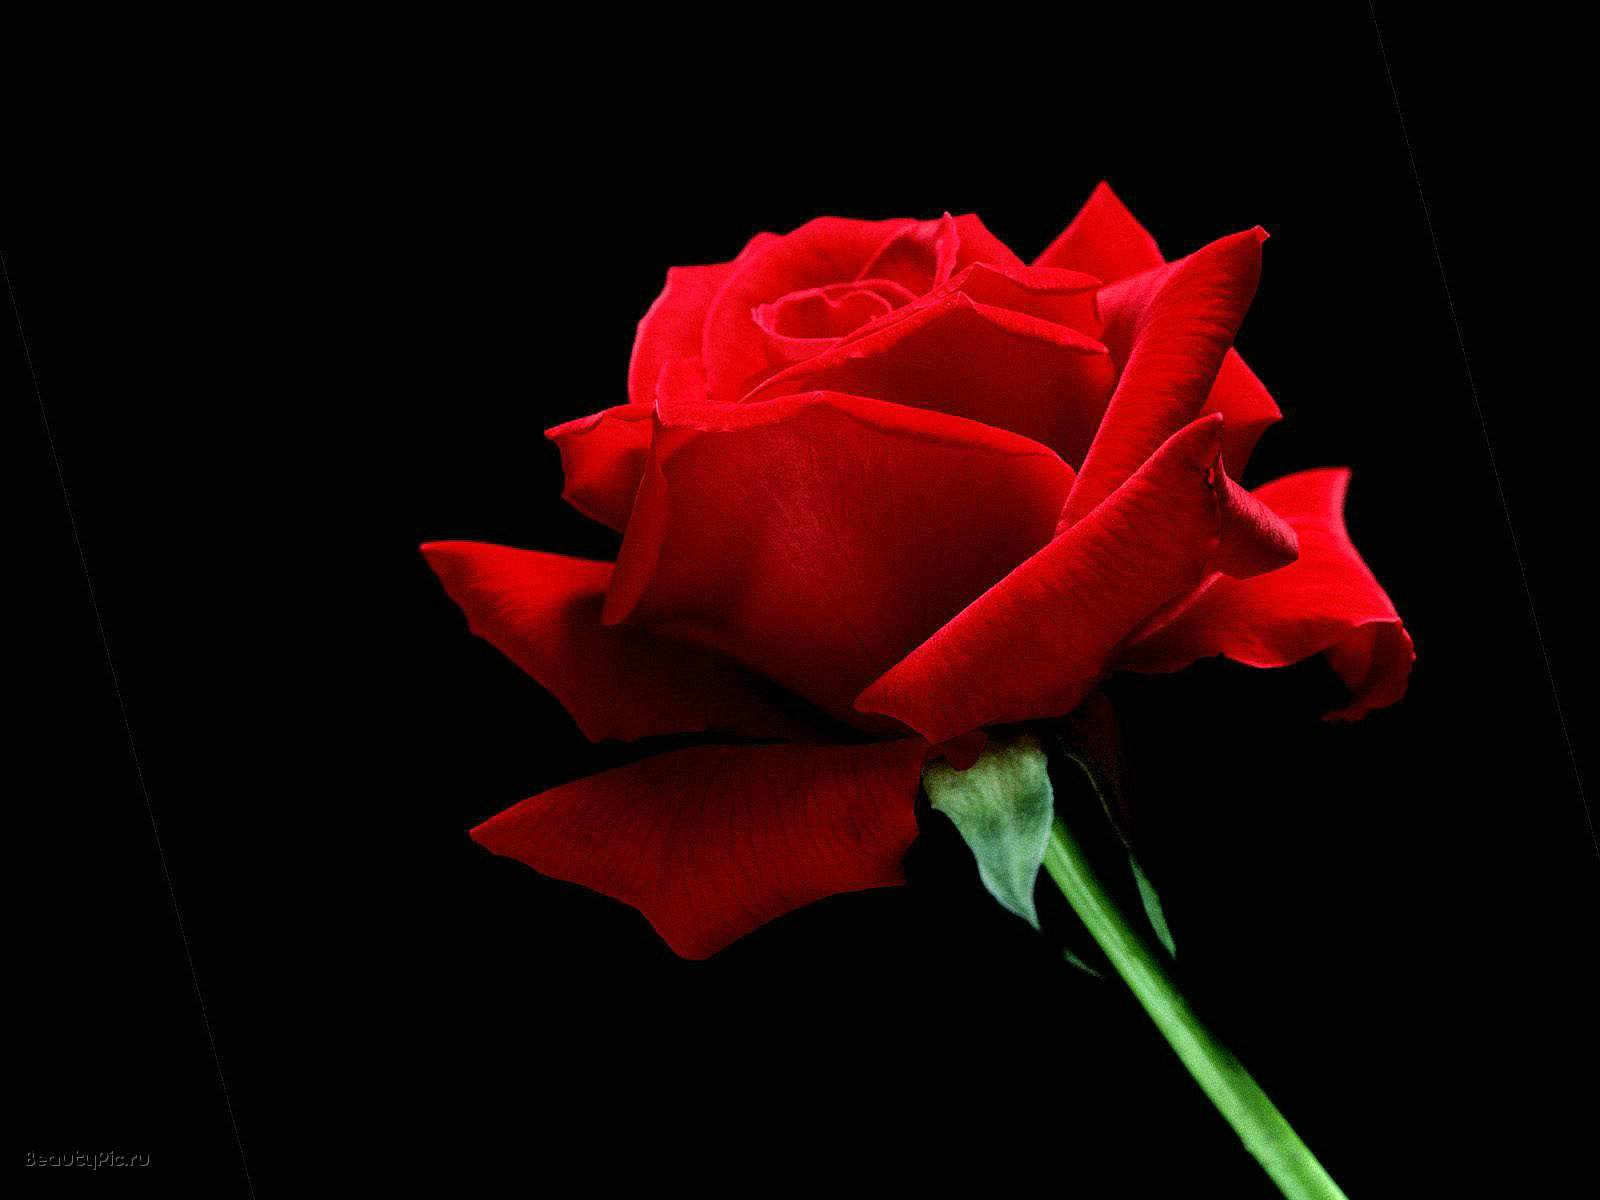 Black and white wallpapers red rose on black background for How to make black roses